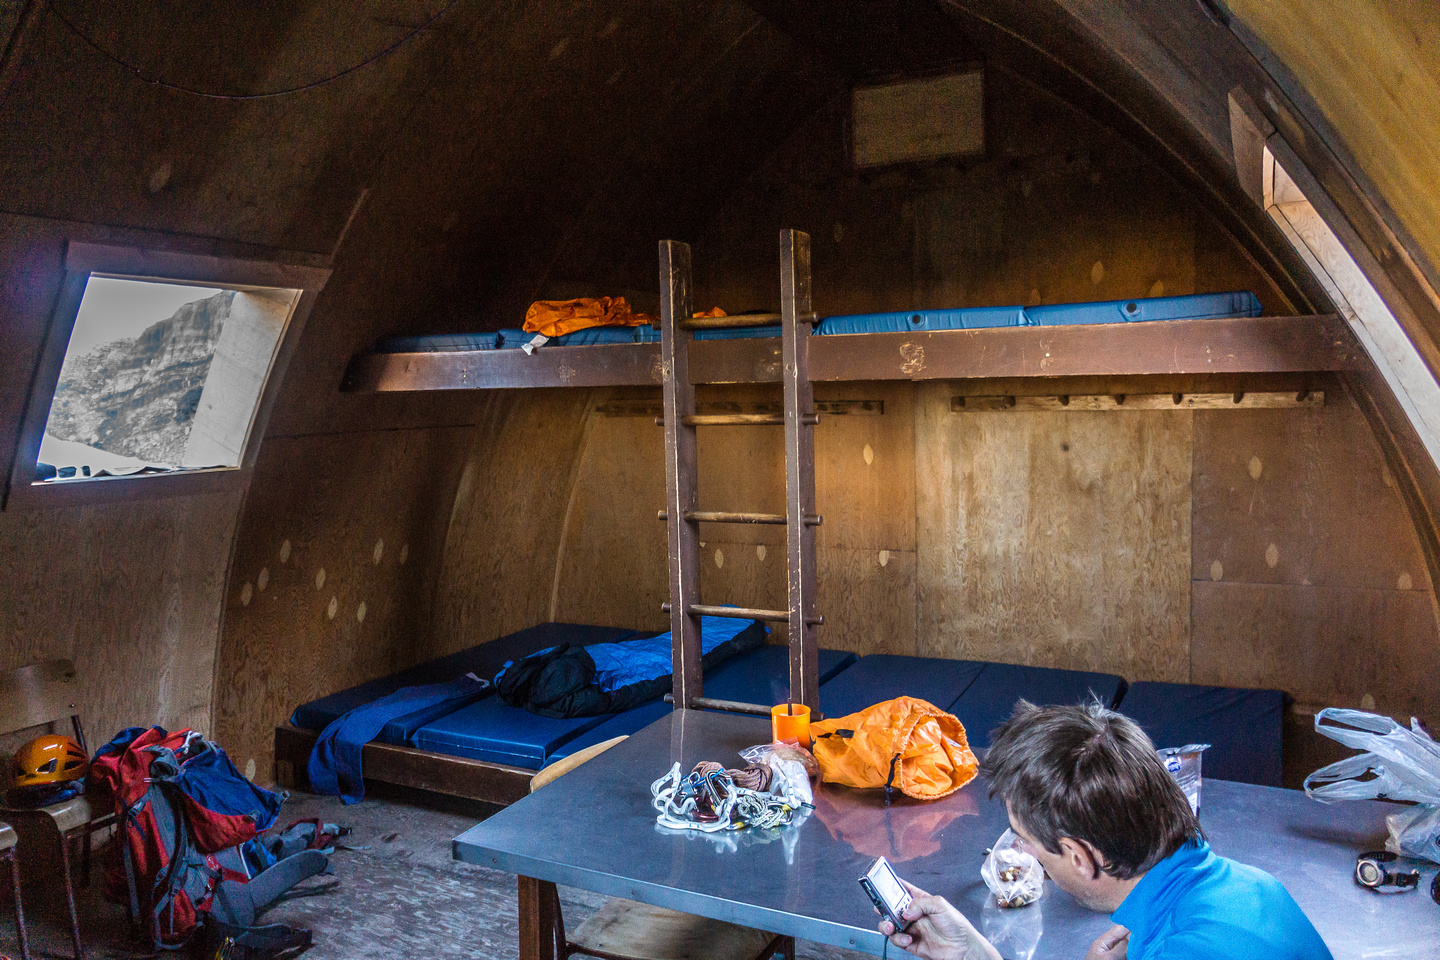 Inside the cozy - and empty - Hind Hut.